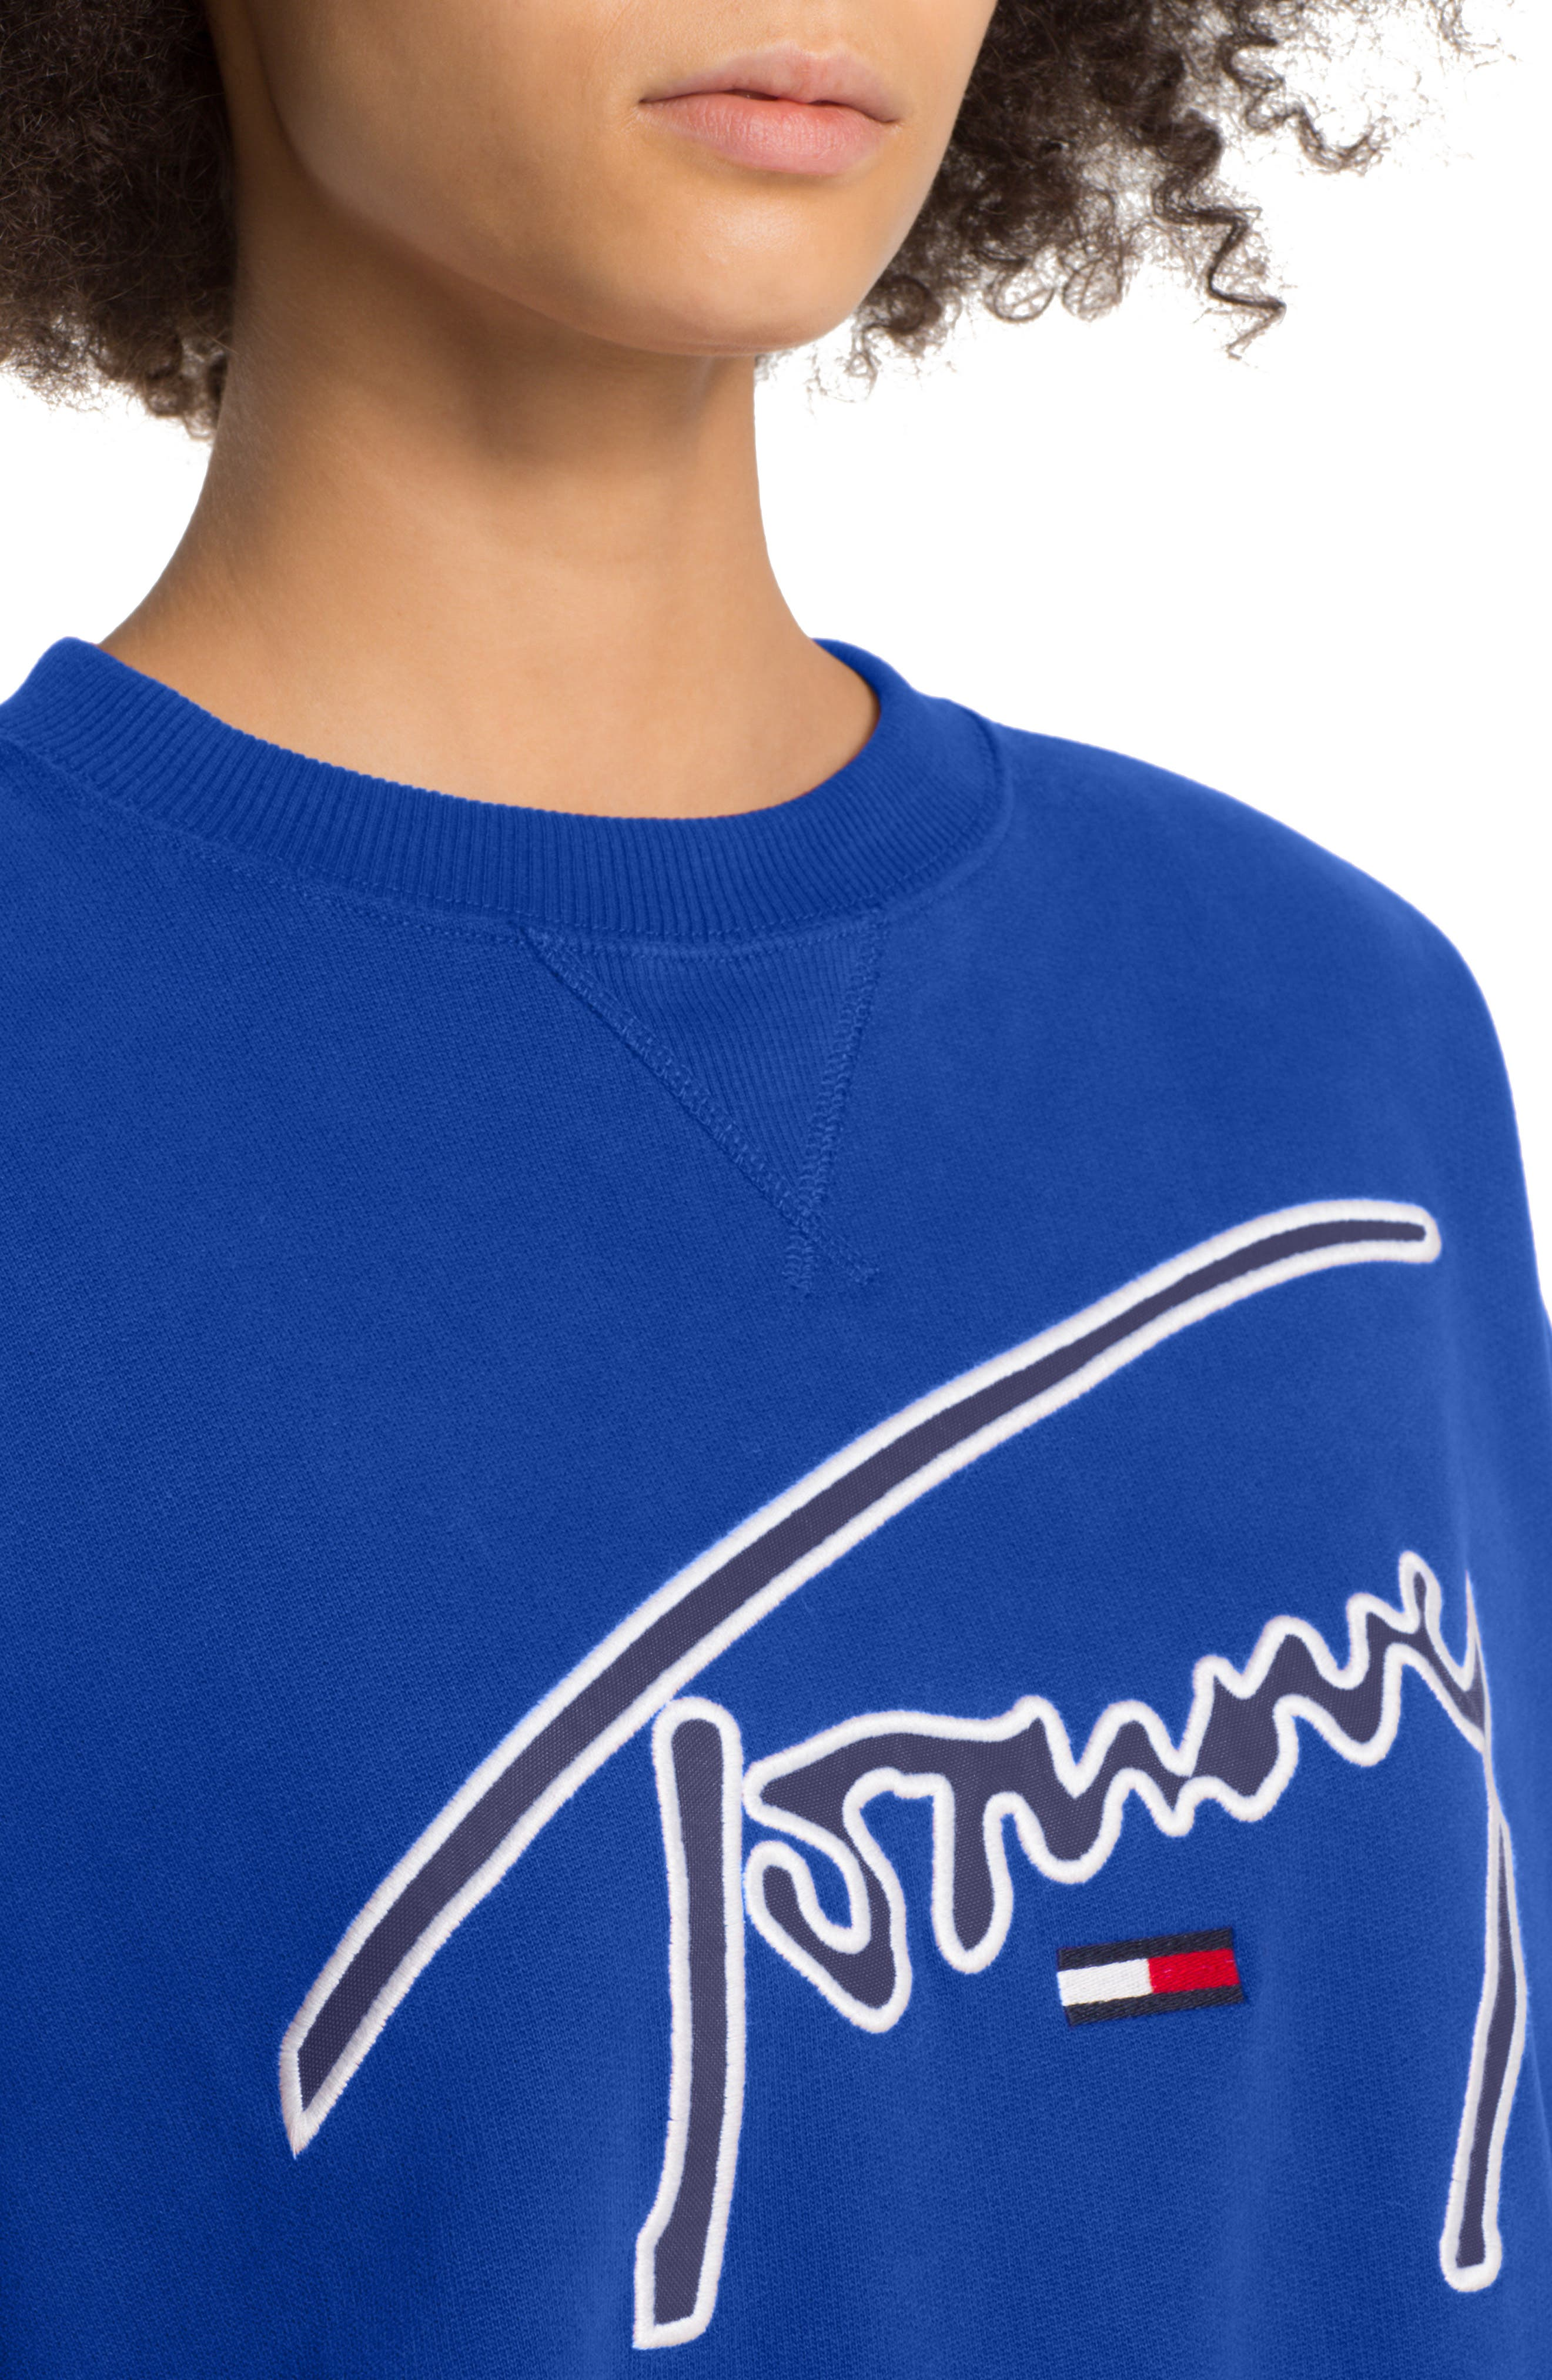 TOMMY JEANS,                             TJW Embroidered Logo Sweatshirt,                             Alternate thumbnail 3, color,                             419